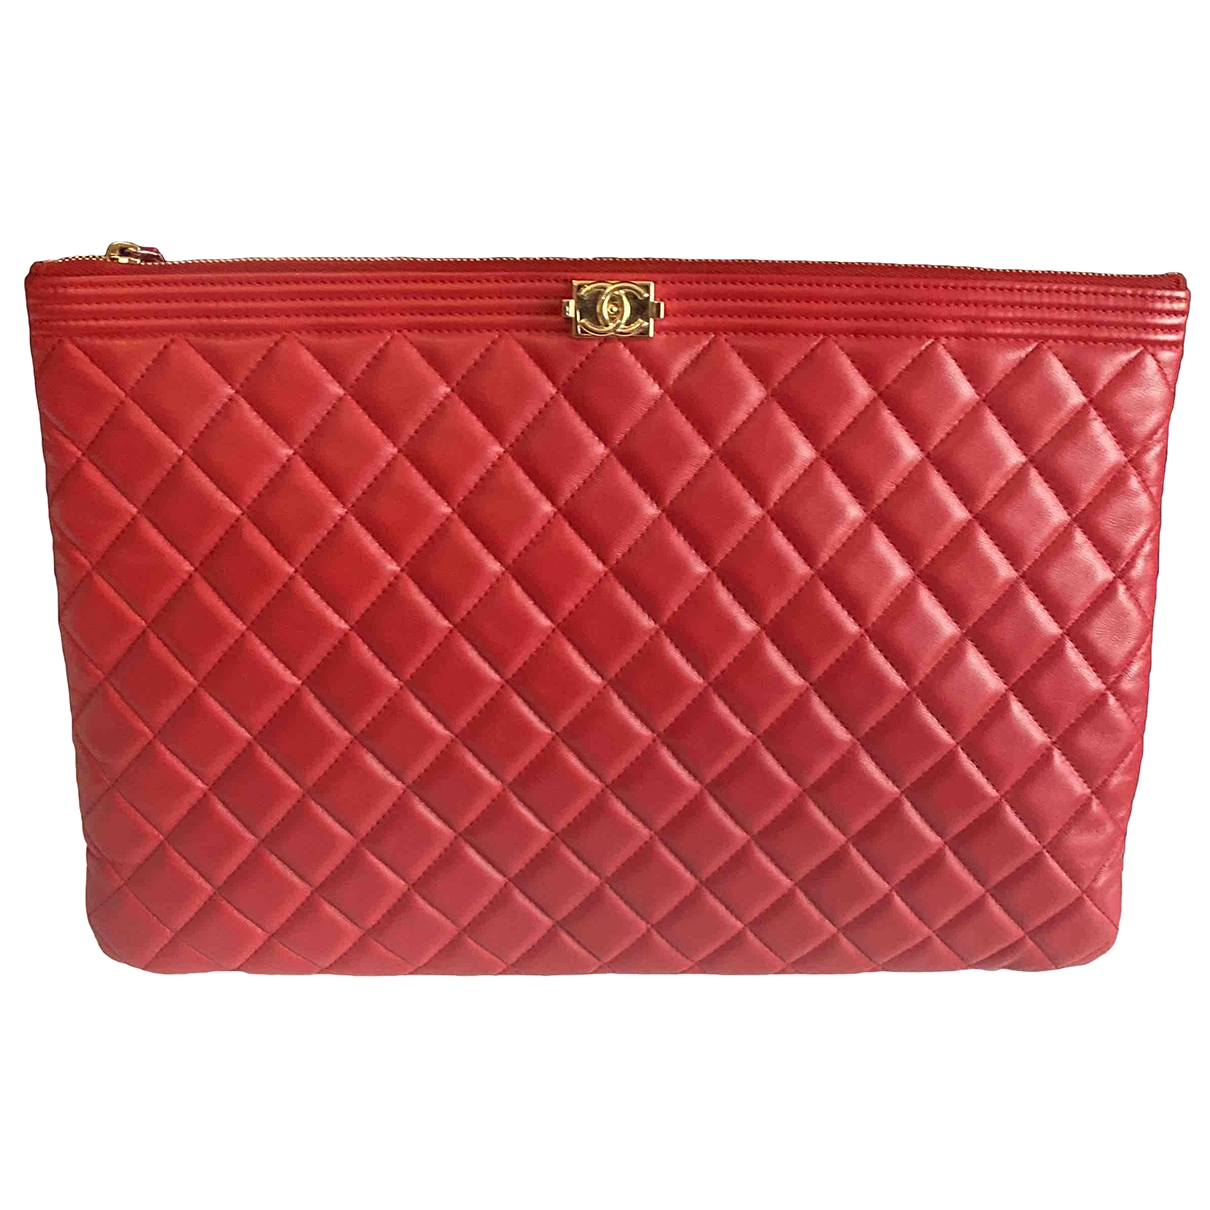 Chanel Timeless/Classique Red Leather Clutch bag for Women \N